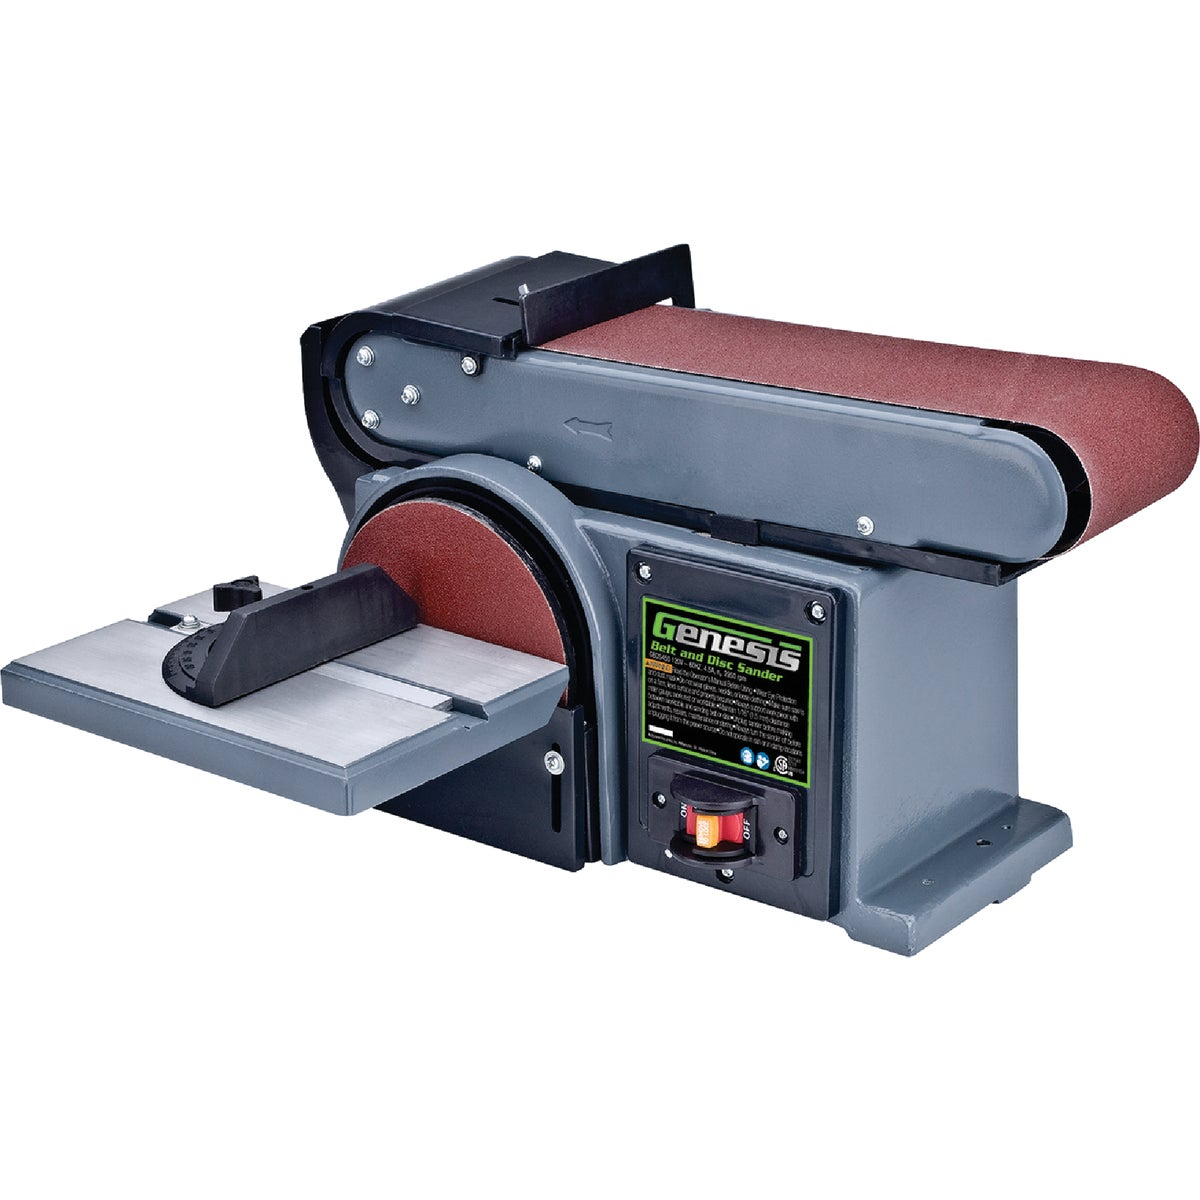 "6"" DISC & 4"" BELT SANDER - 3376-02 by Robt Bosch Tool Skil"